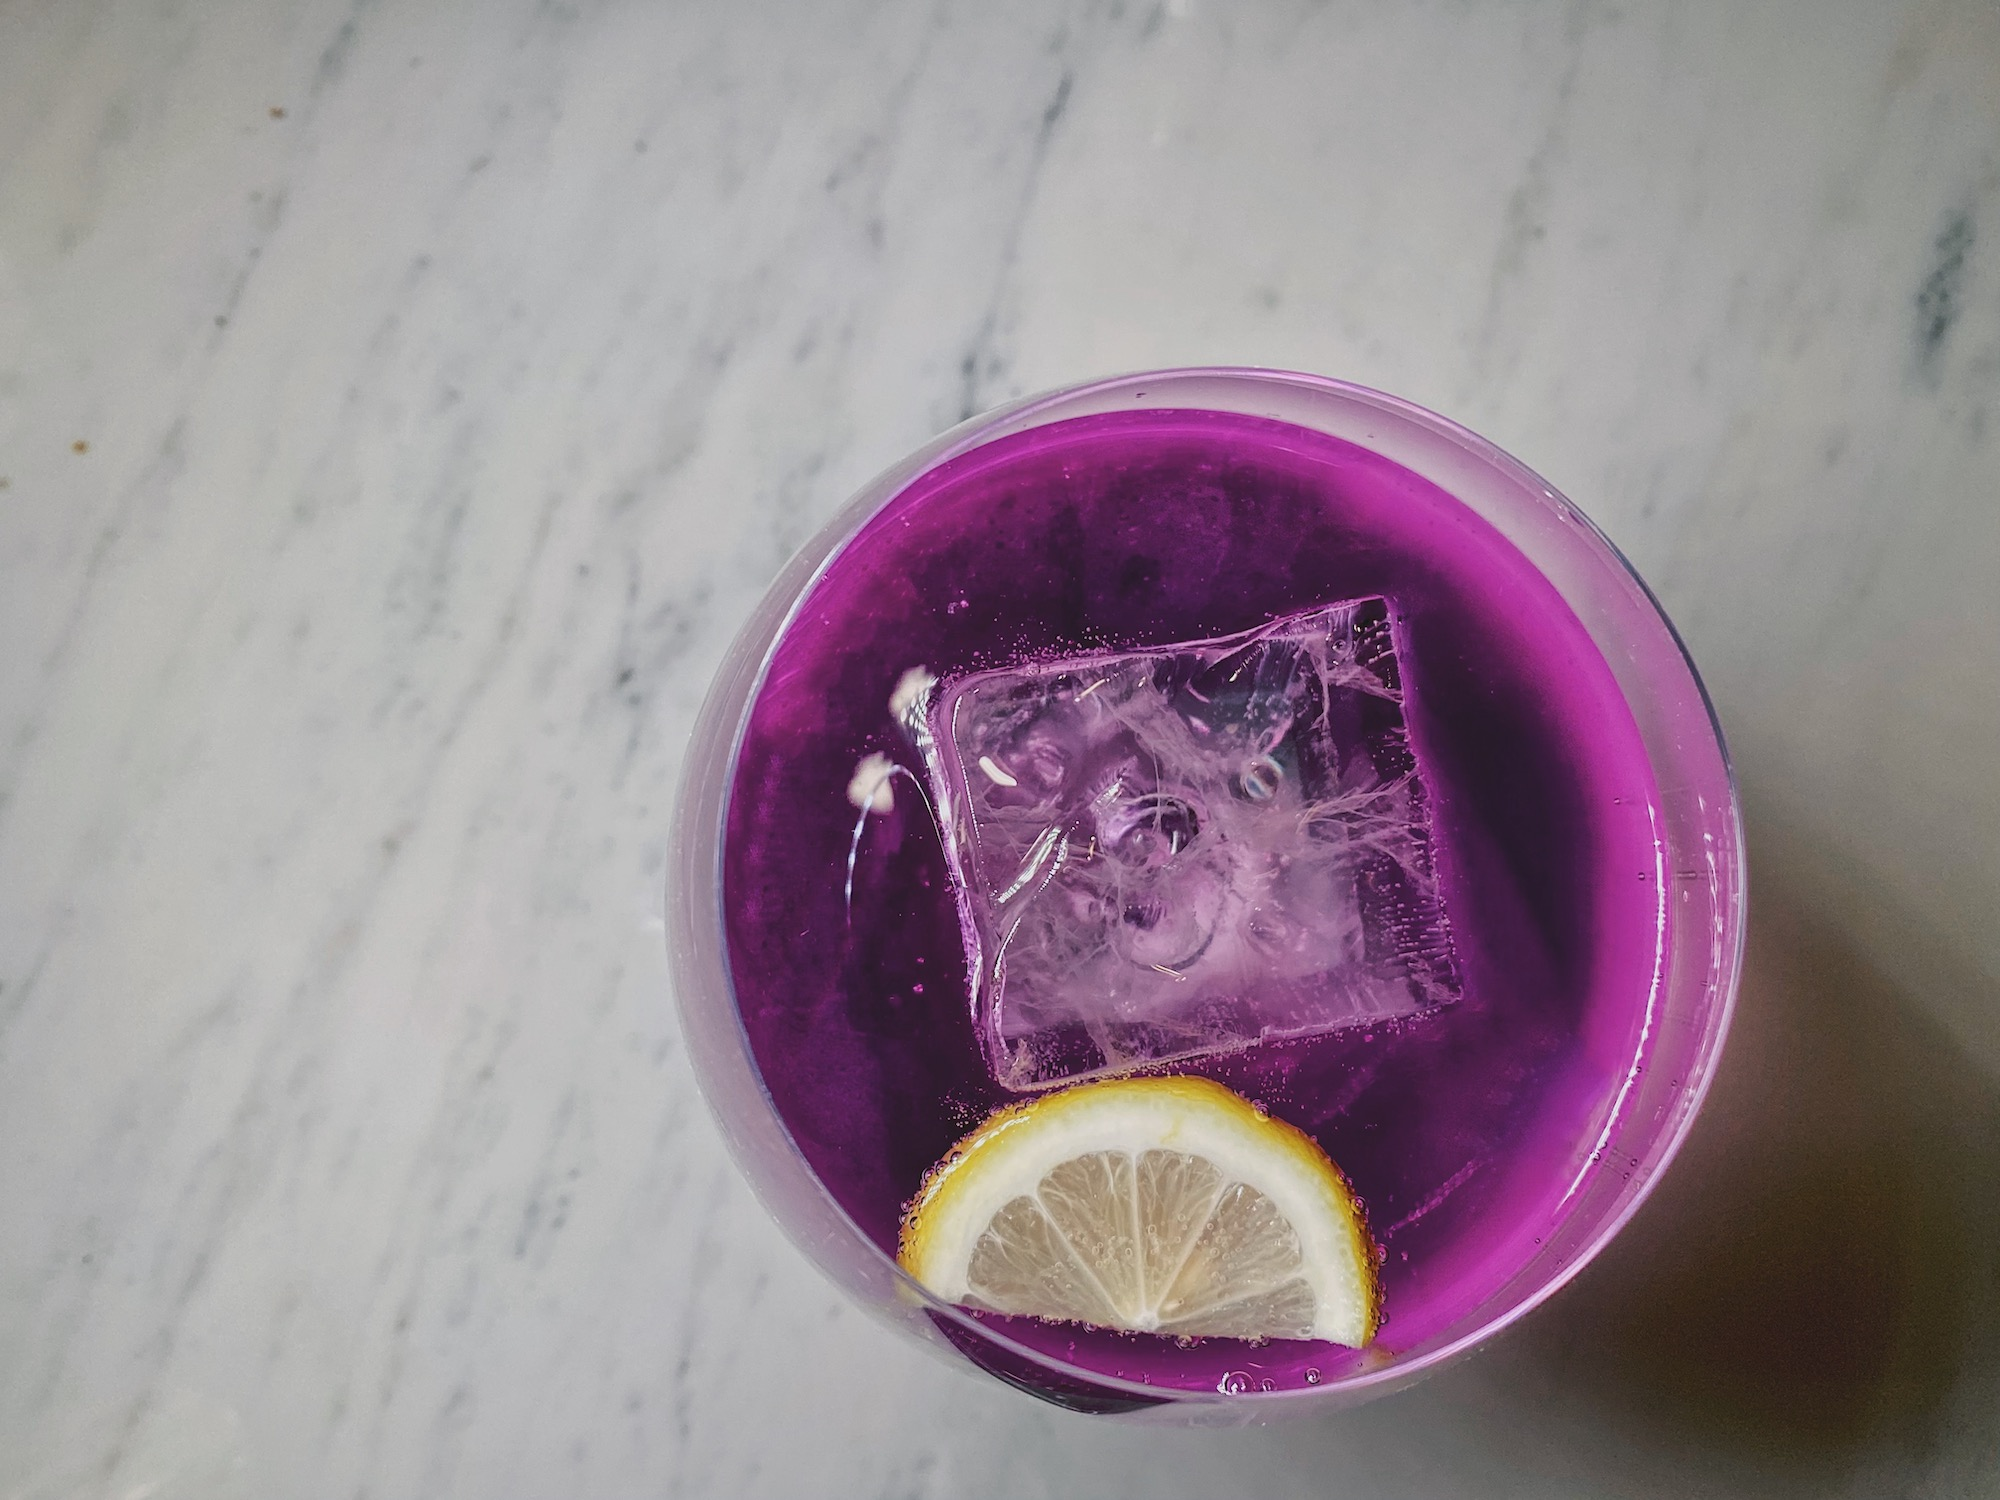 gin-tonic-the-st-regis-bar-butterfly-pea